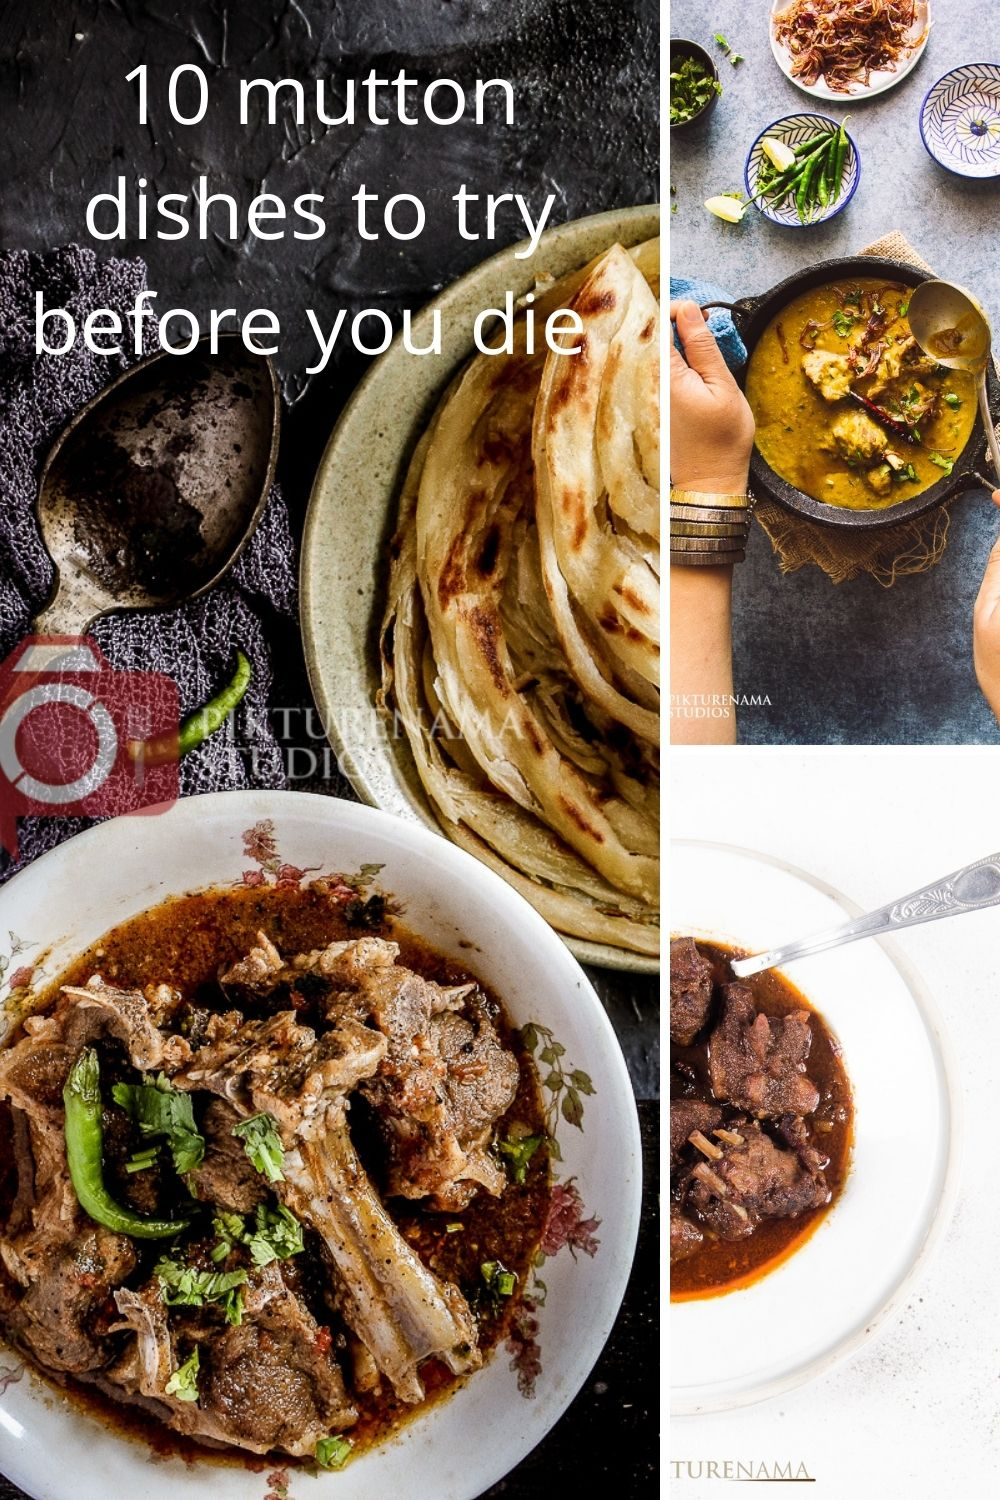 10 mutton dishes to try before you die - pinterest